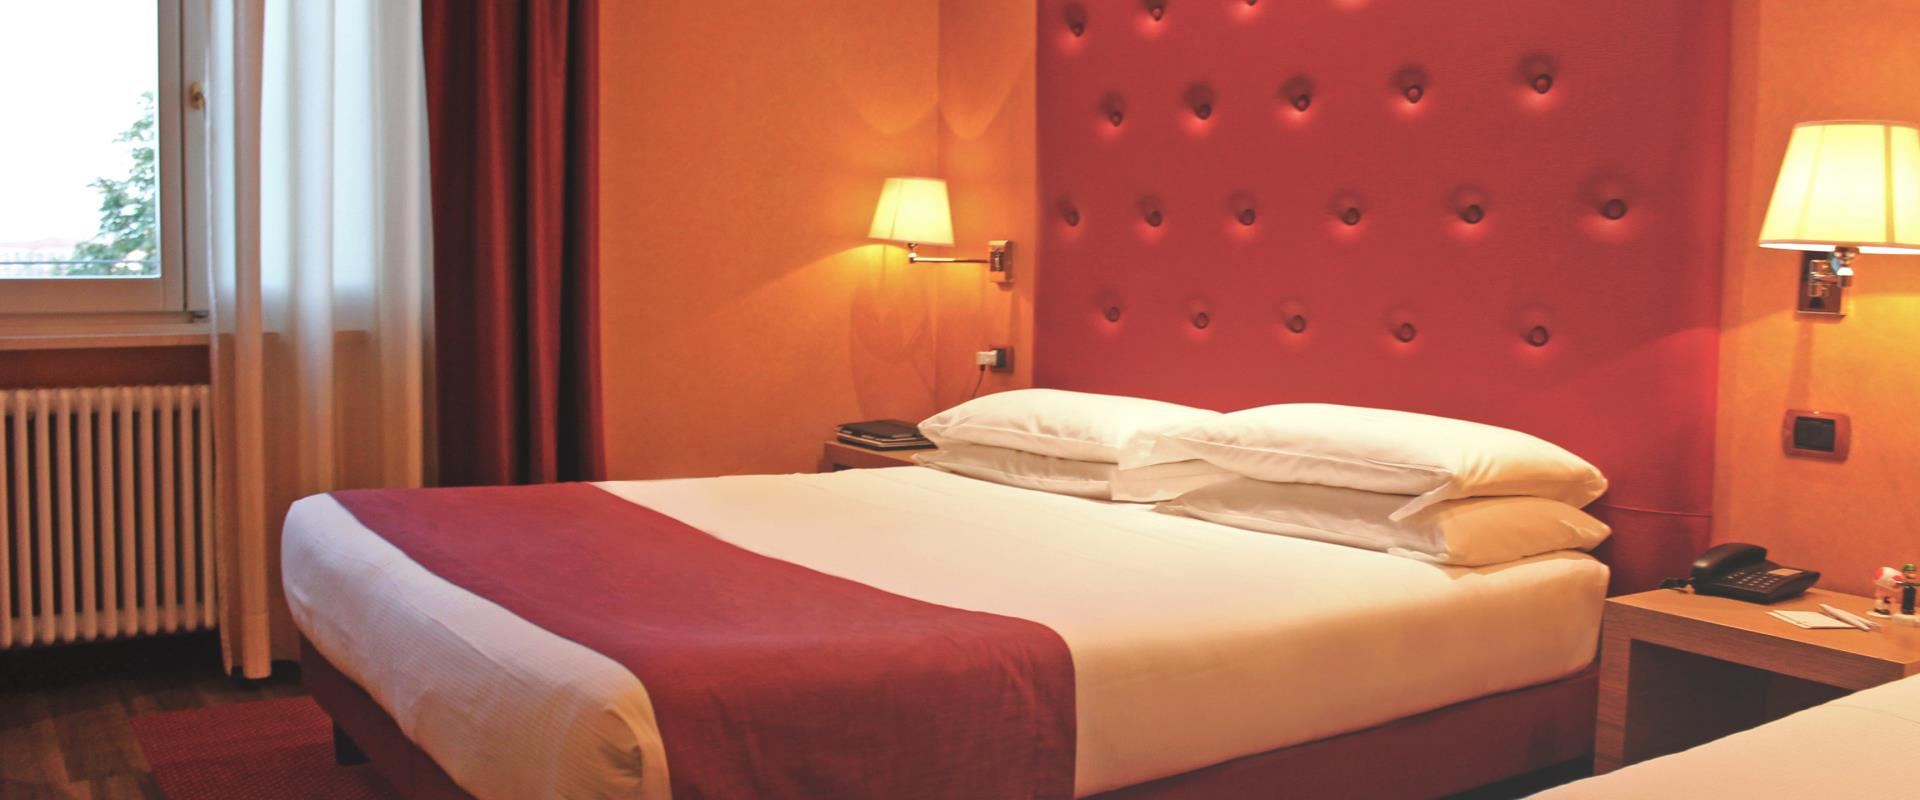 Check out the 4 star amenities at the Best Western Hotel Piemontese Bergamo!